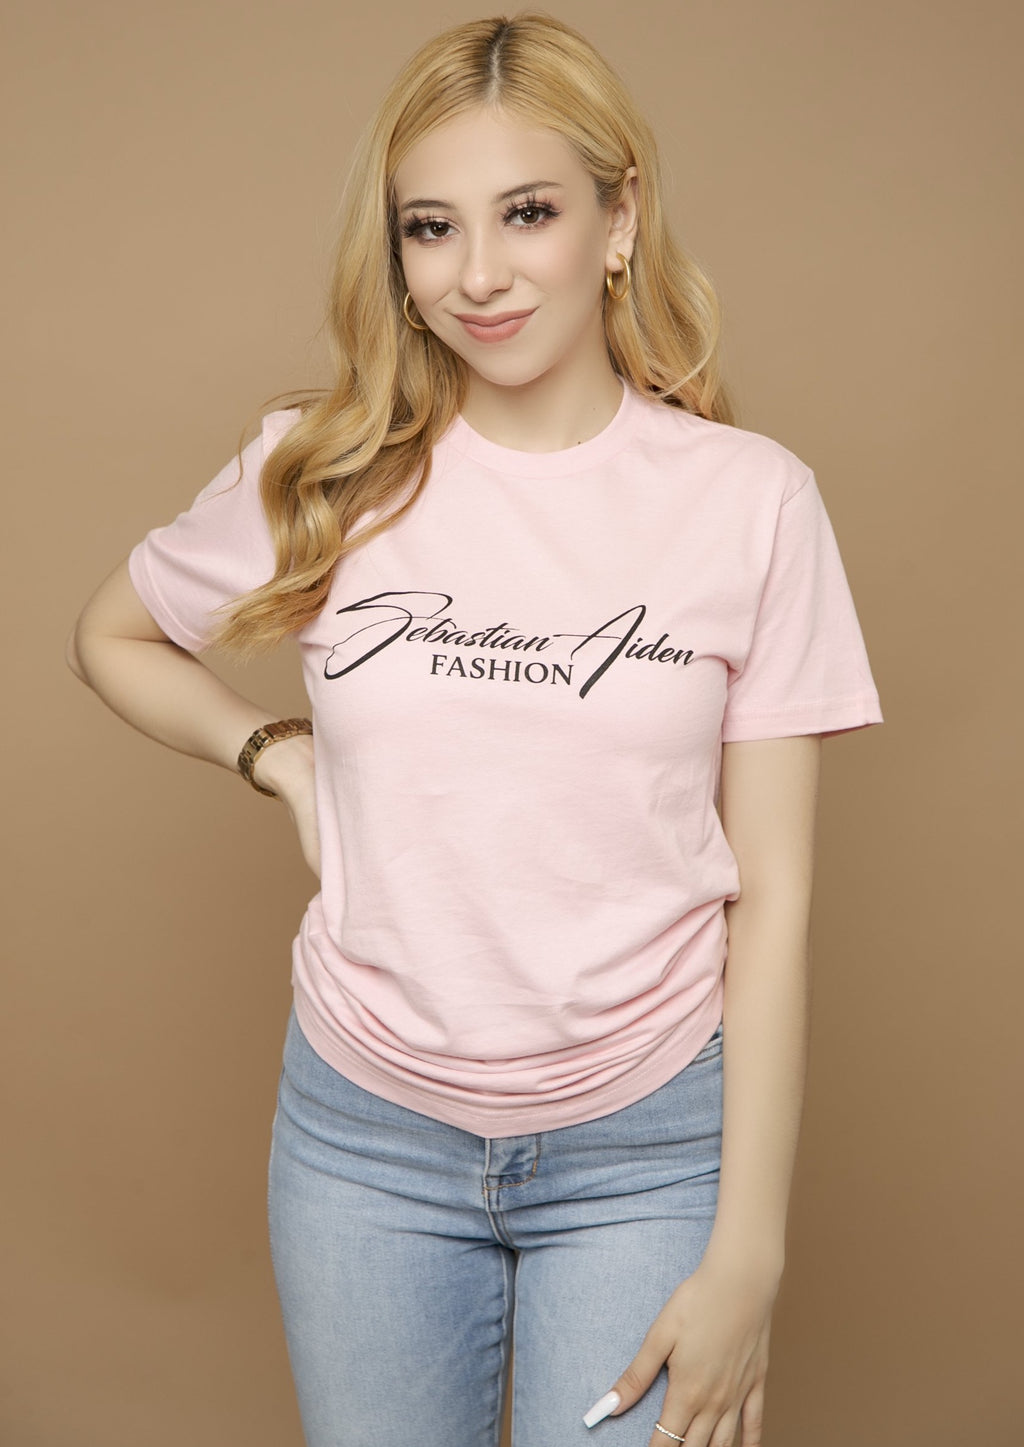 Sebastian Aiden T-Shirt- Light Pink